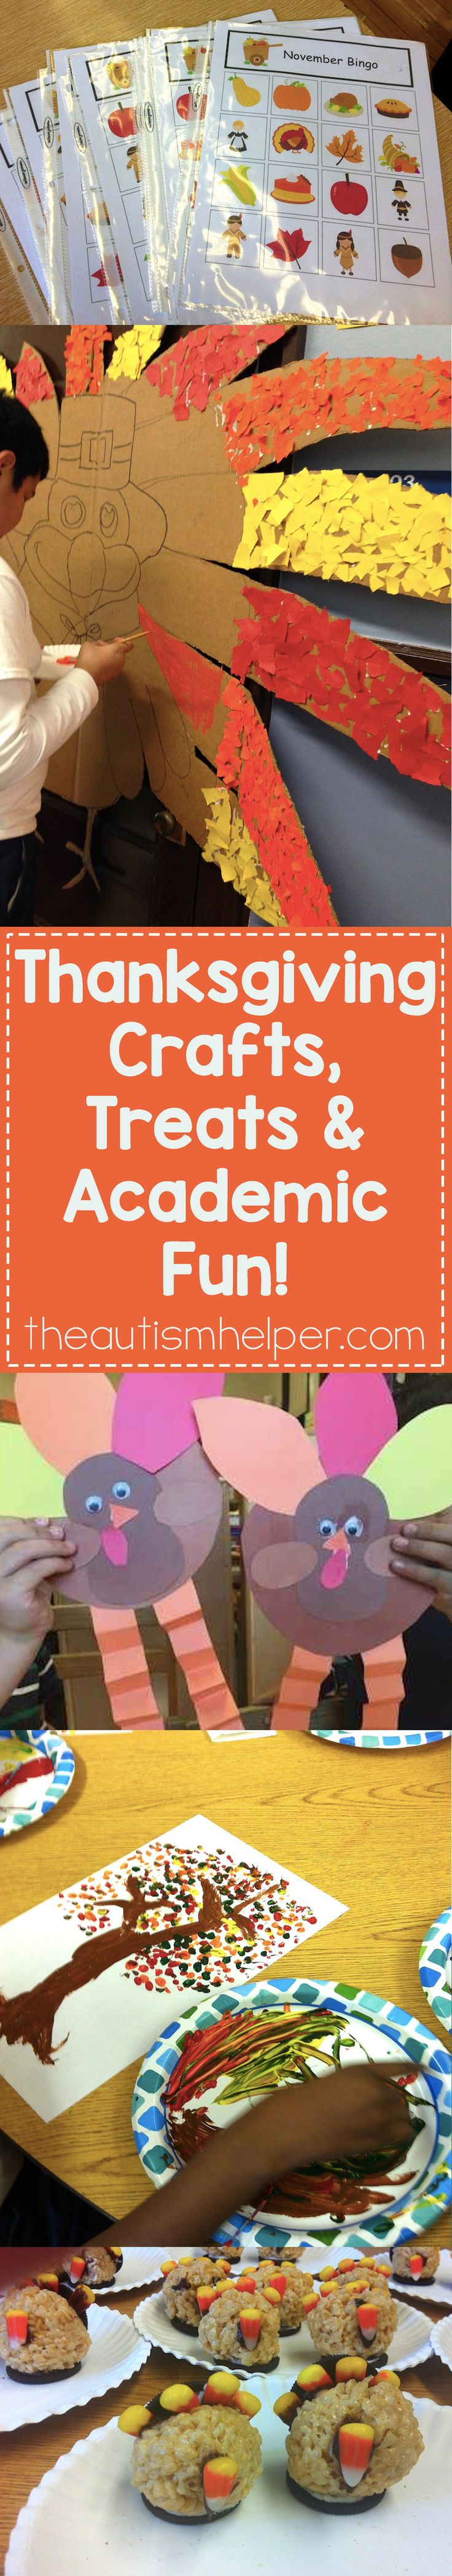 We're sharing TONS of links to our favorite Thanksgiving crafts, treats & academic activities!! From bingo to rice crispies, you'll have lots to enjoy this month! From theautismhelper.com #theautismhelper